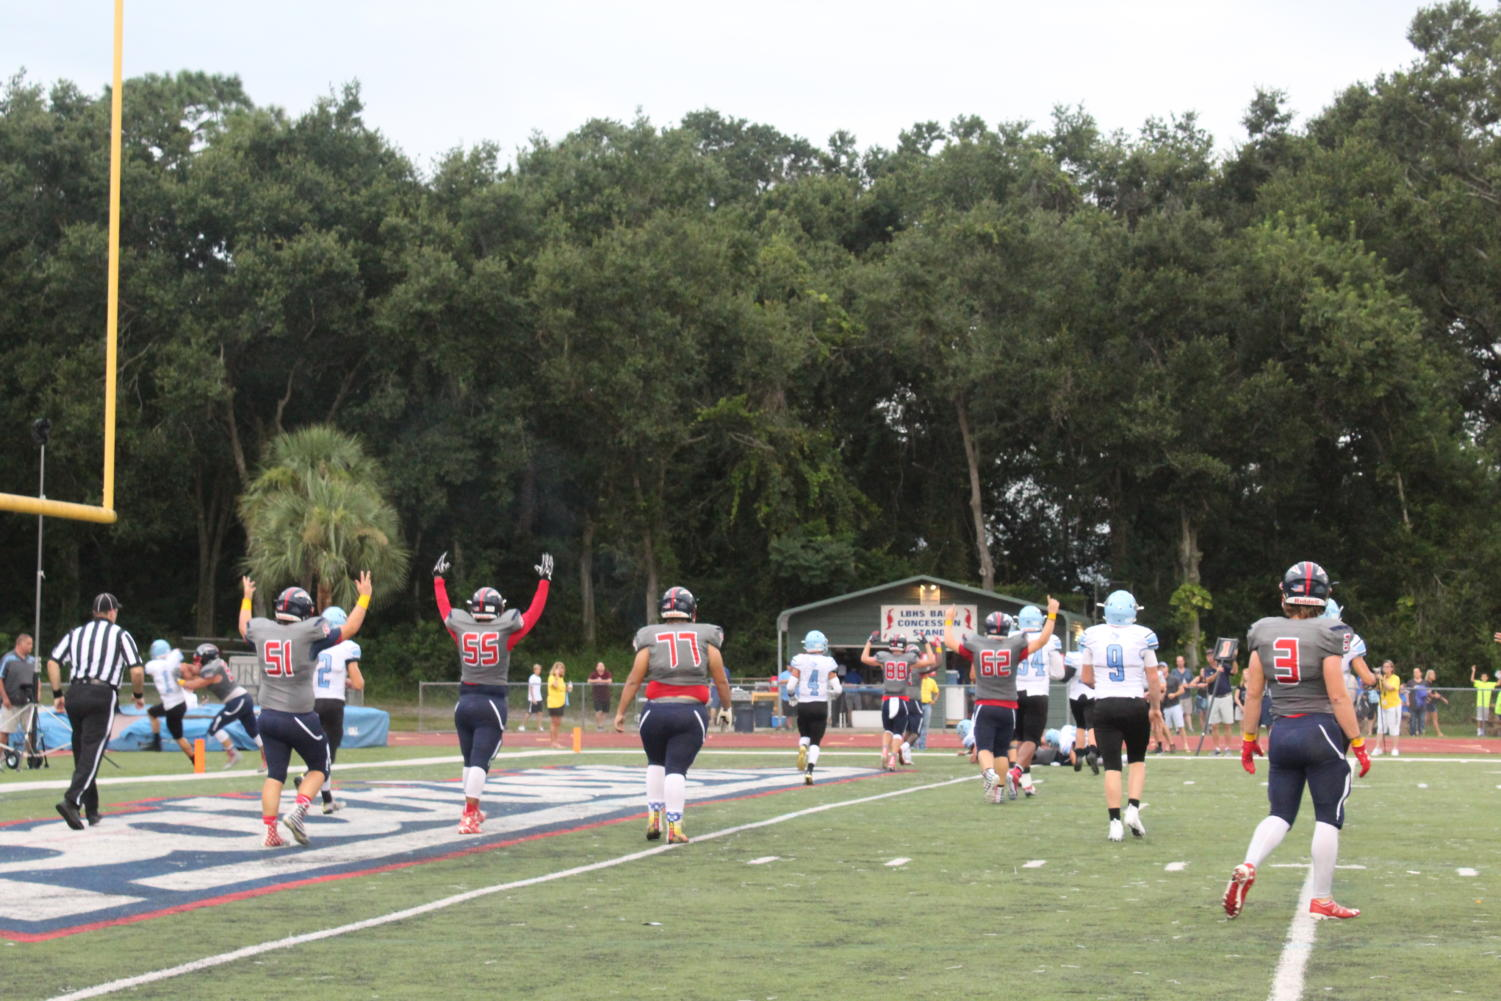 On Friday, August 24th, the Lake Brantley Varsity Football Team scores a touchdown against the Hagerty Huskies. The Patriots won the game at Tom Storey Field, 35-17.